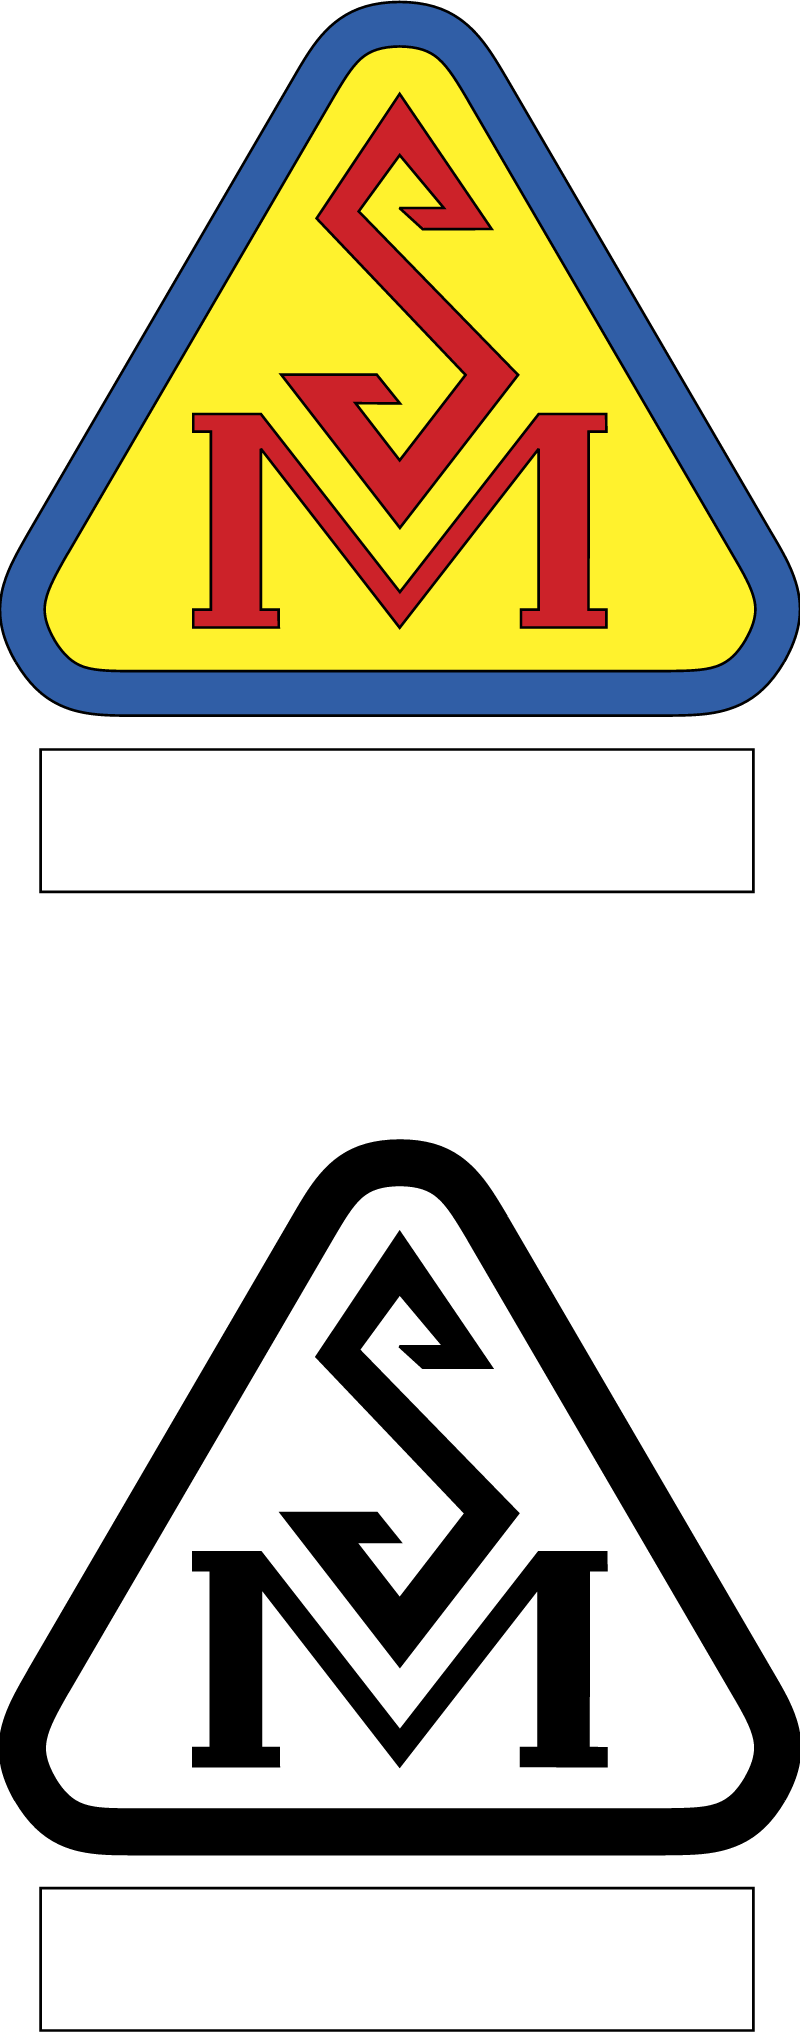 004 sign vector